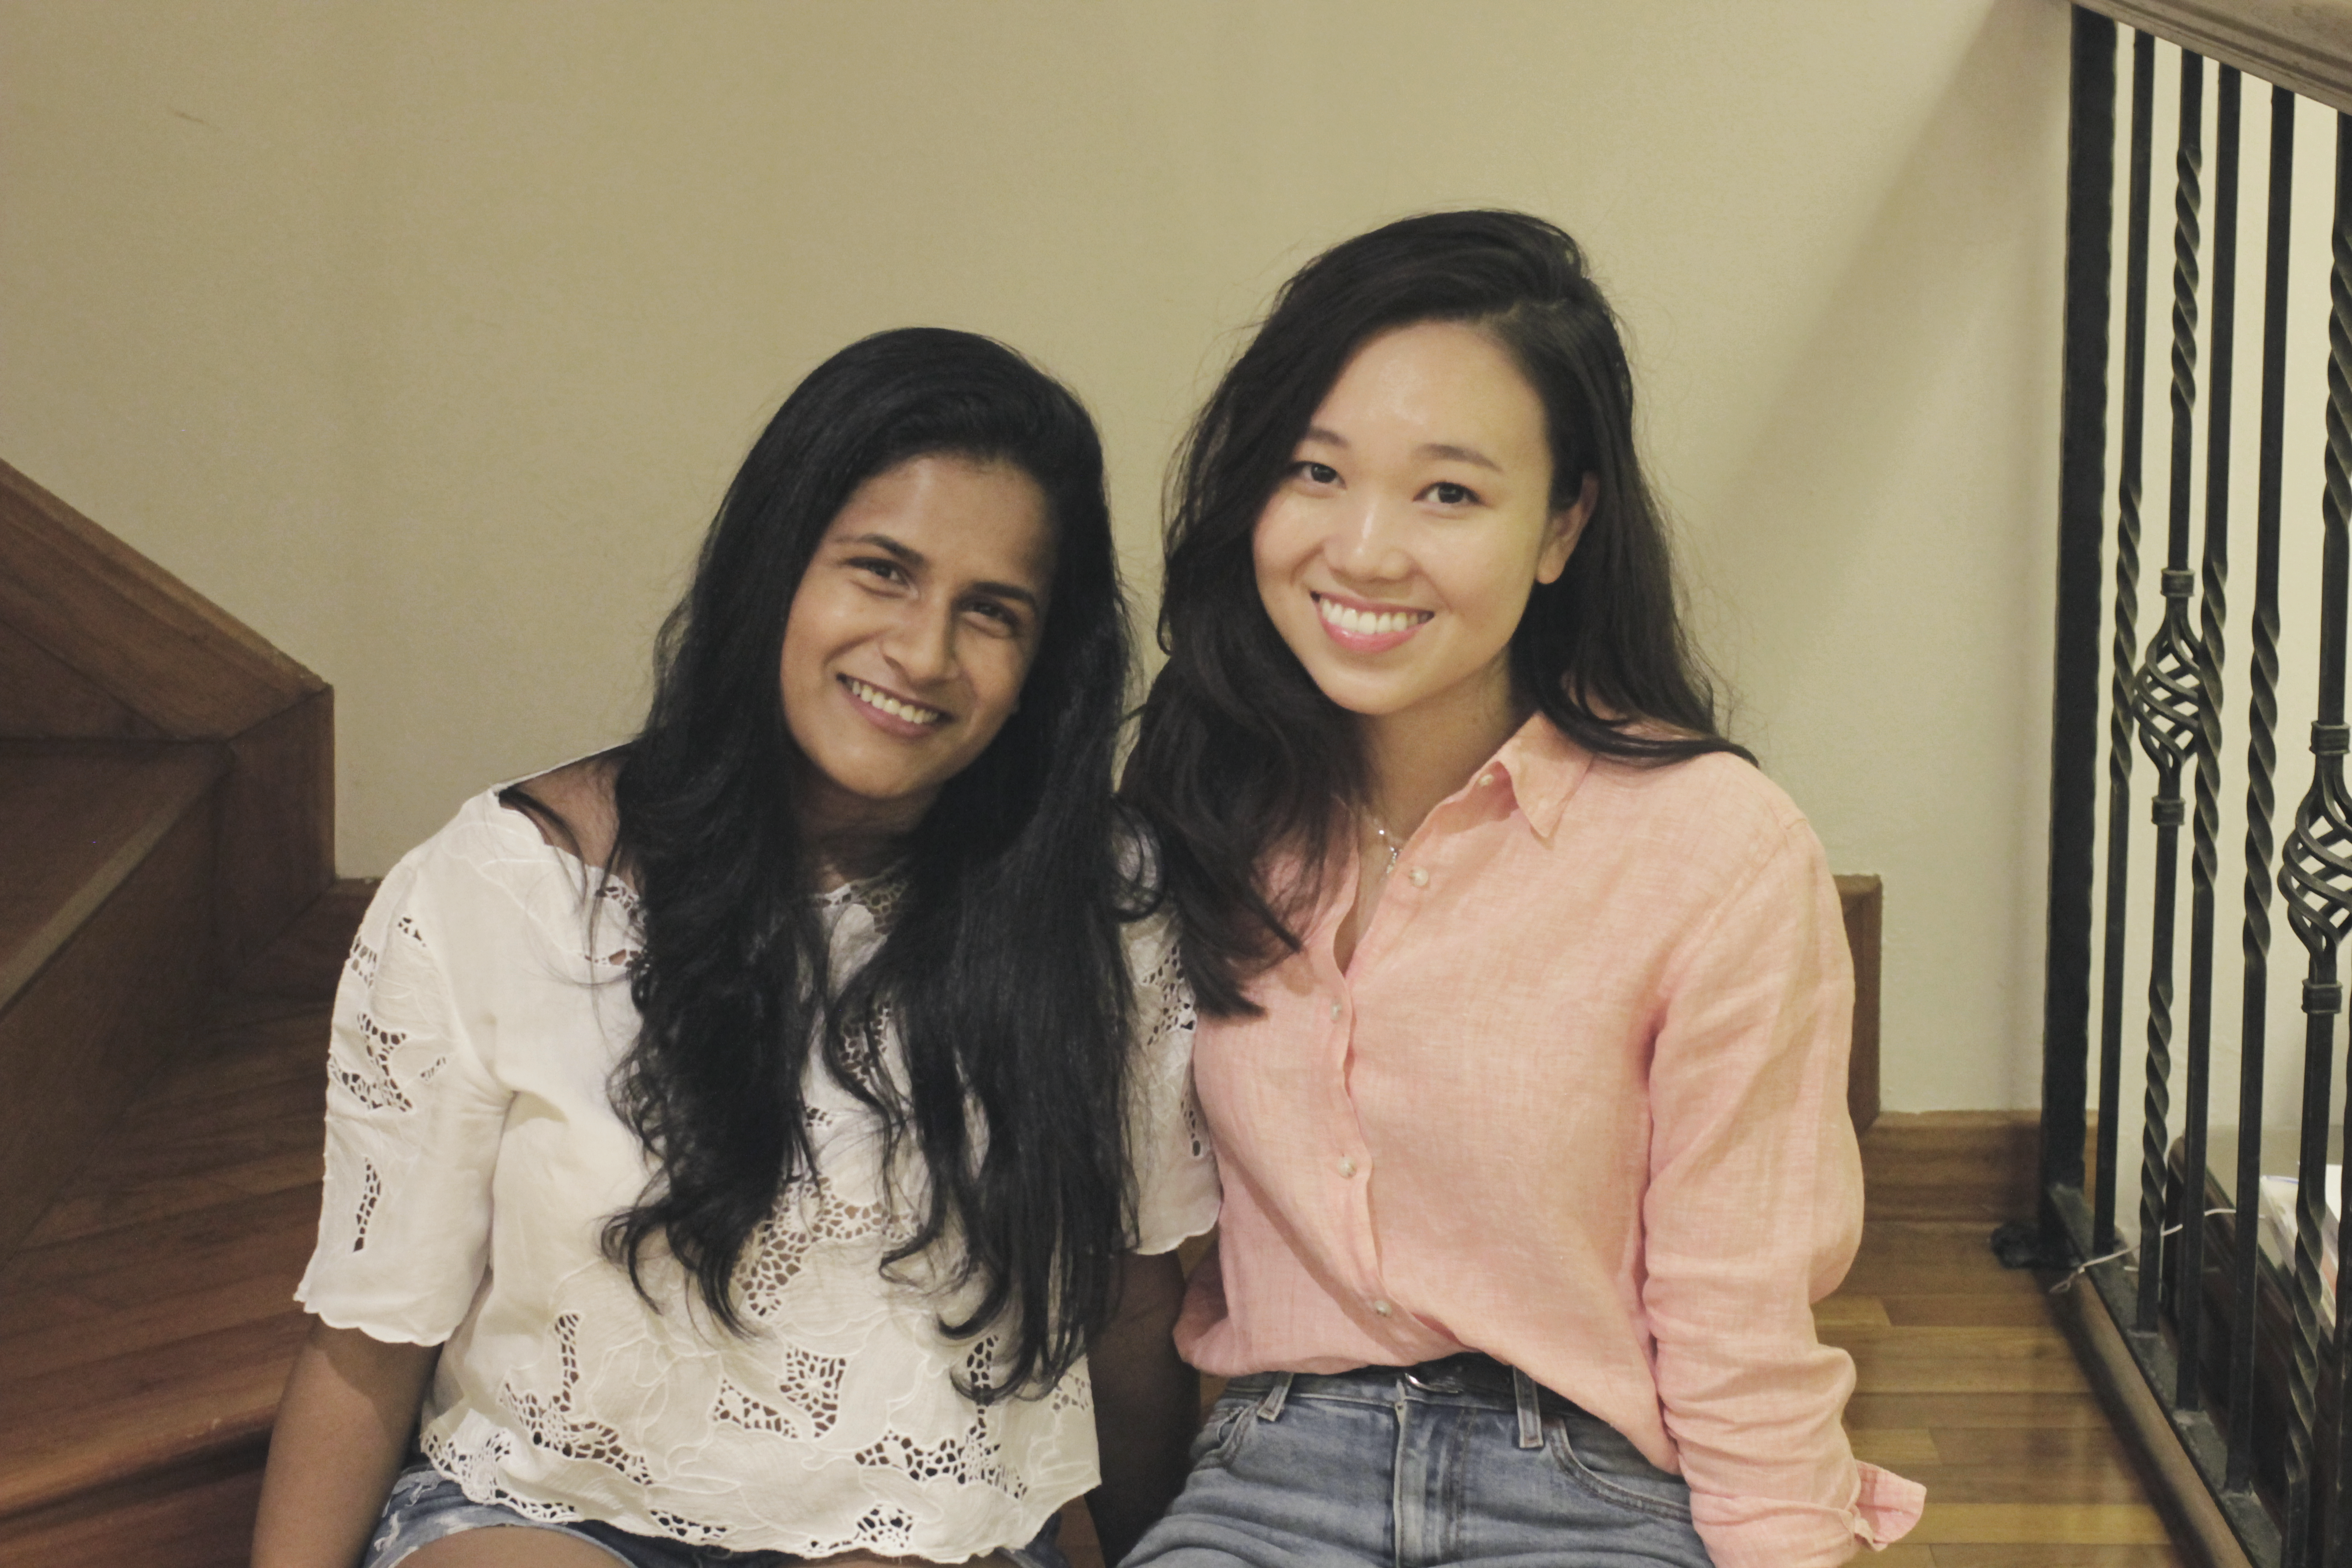 Co-founders Sneha and Gladys